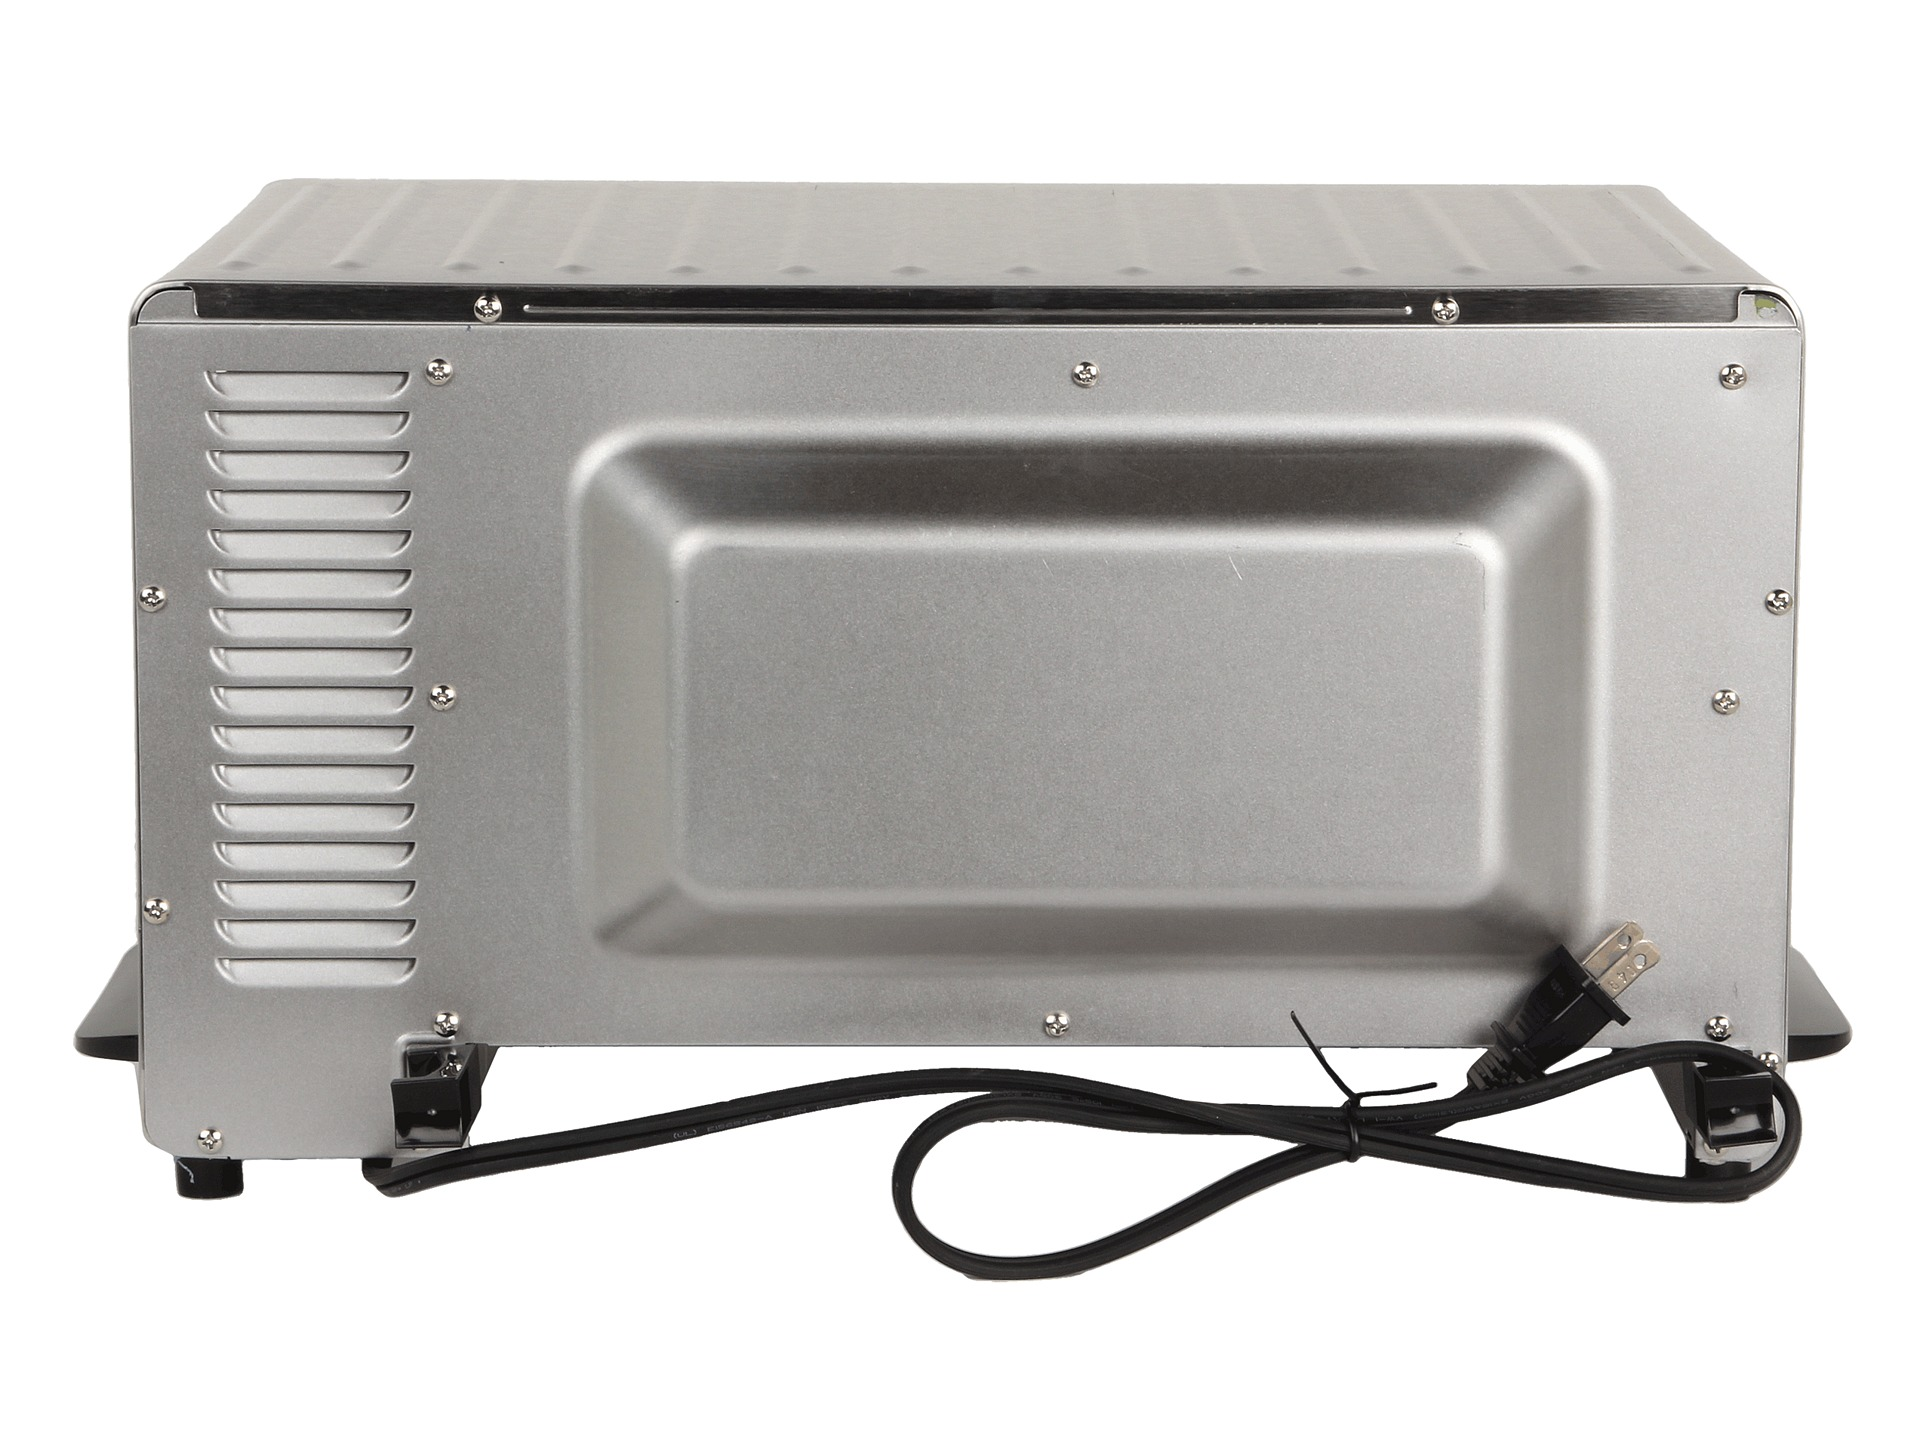 Cuisinart Countertop Convection Toaster Oven Costco : No results for cuisinart tob 60n convection toaster oven - Search ...